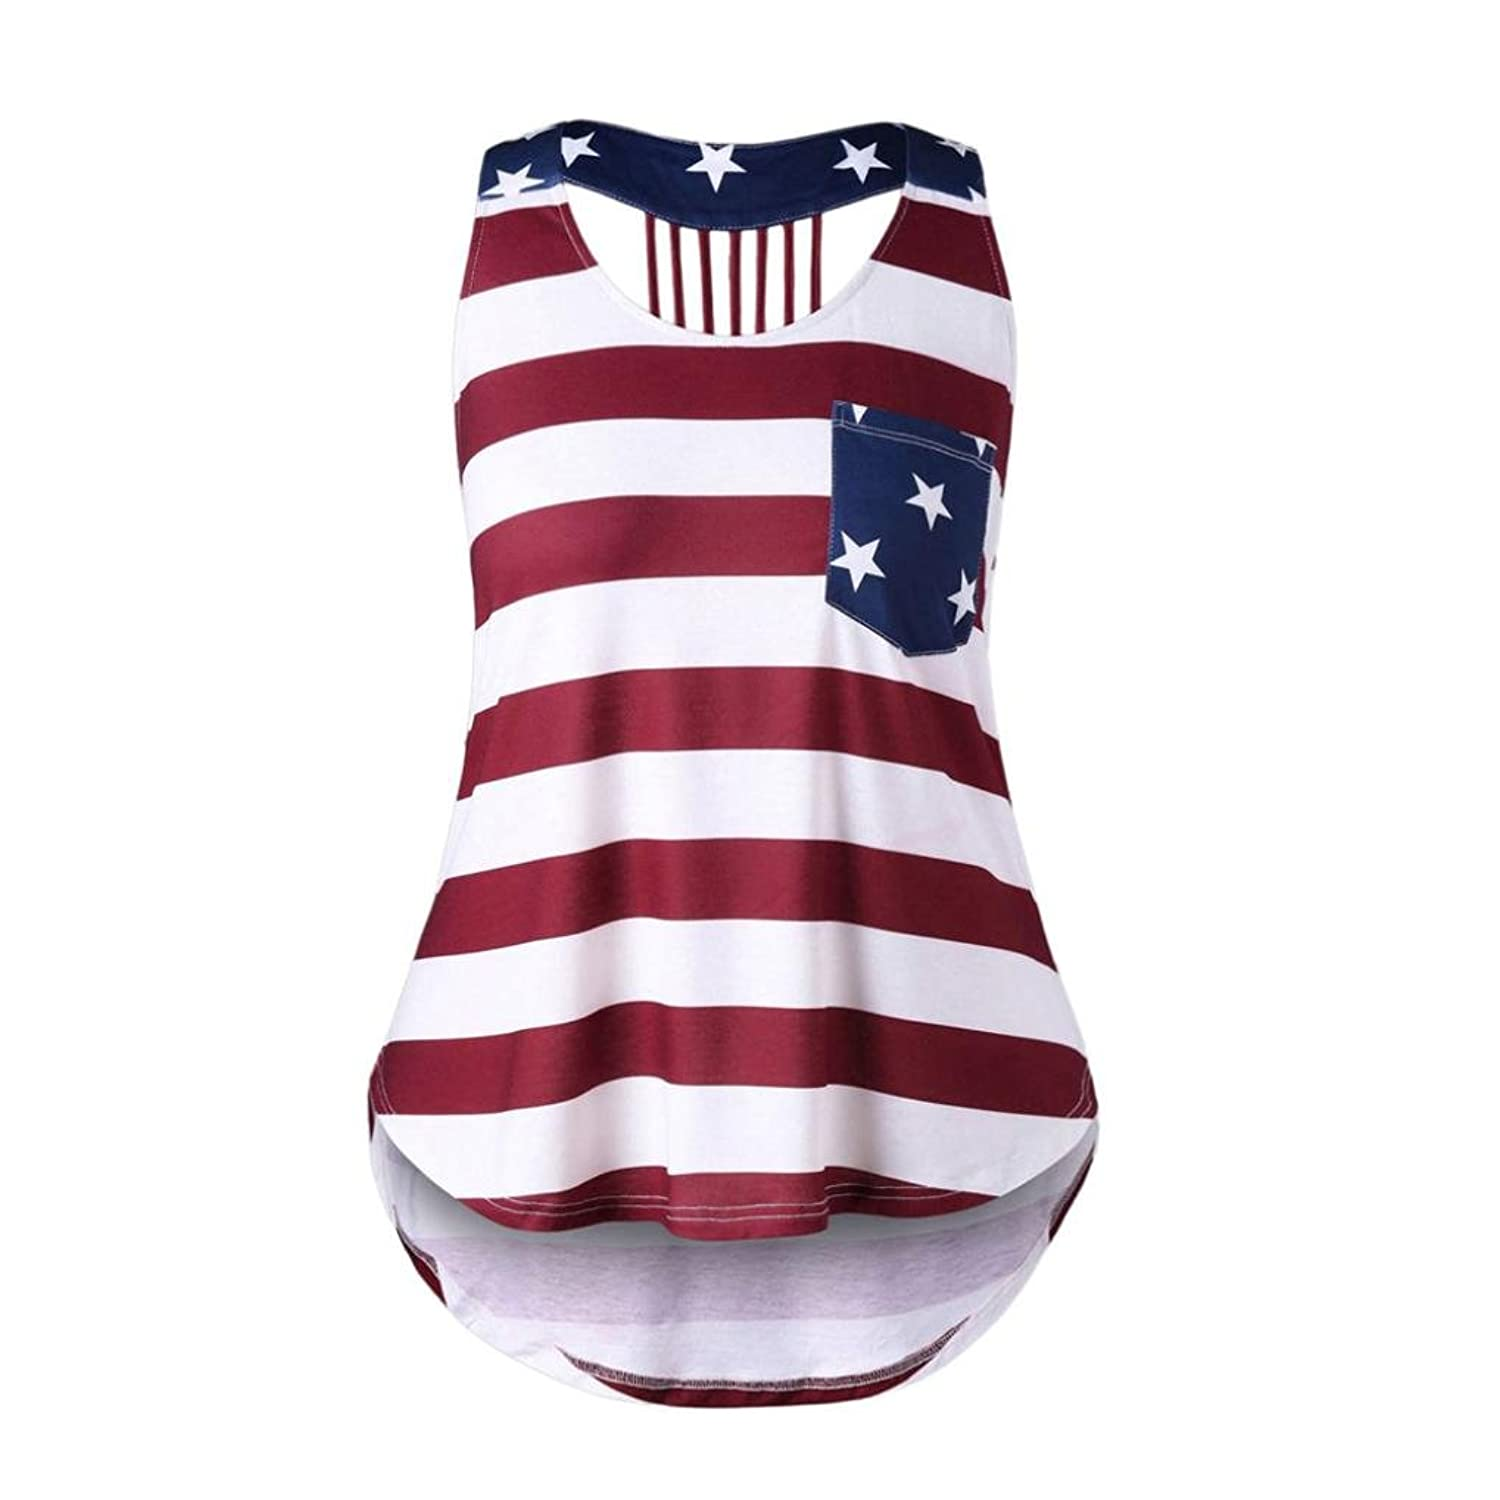 Boys' Clothing Clothing Sets Baby Clothes Sleeveless Toddler Kids Boys Vest Tops Cactus Print Pants Outfits Sets Summer Beach Casual Clothing Cotton Price Remains Stable